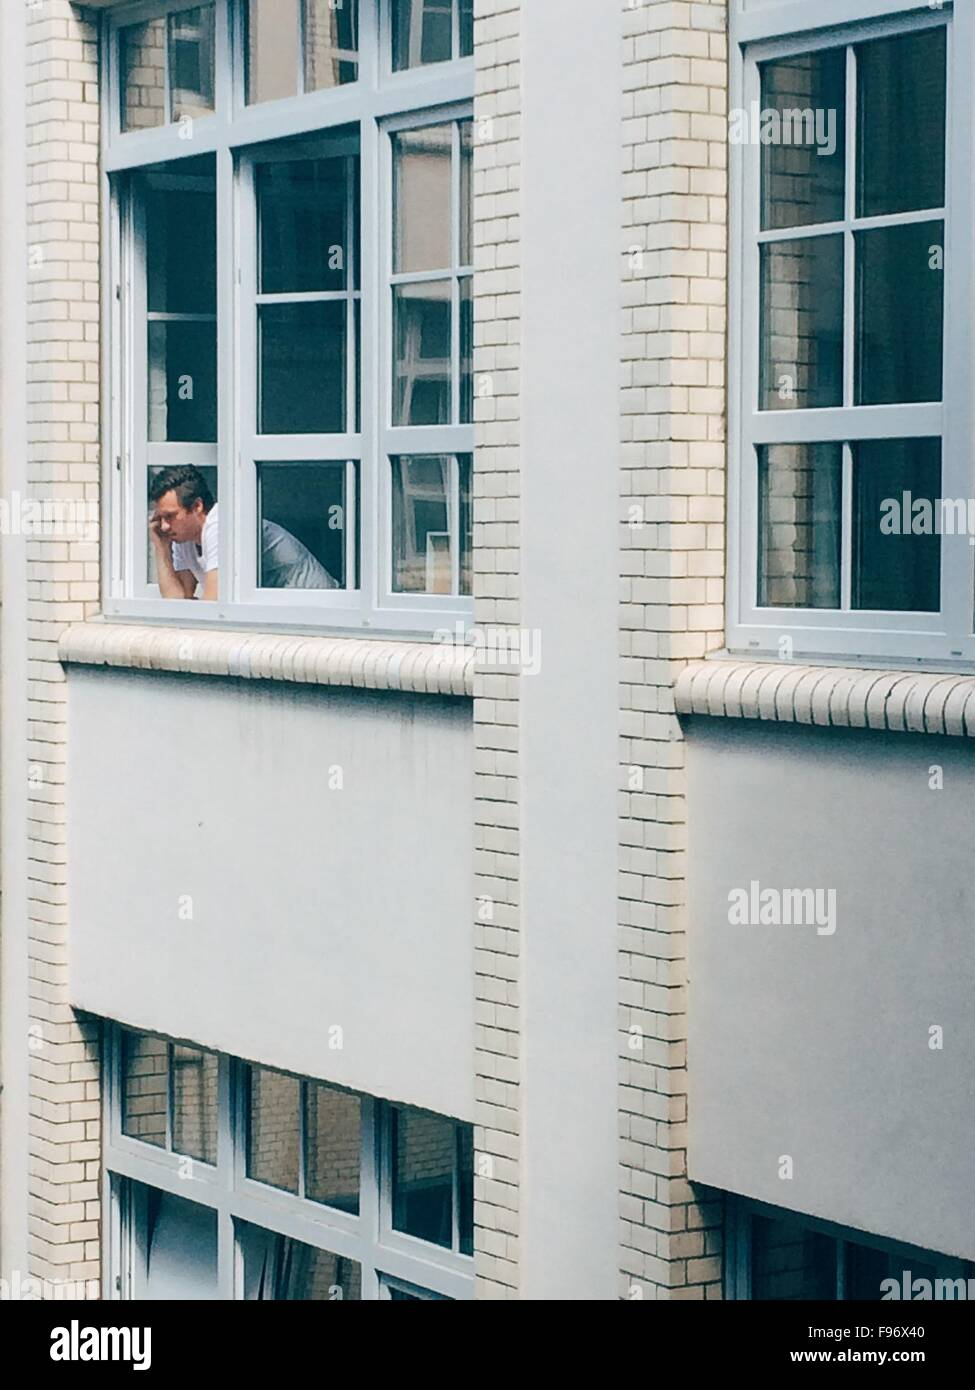 Low Angle View Of A Man Looking Out Of Window - Stock Image